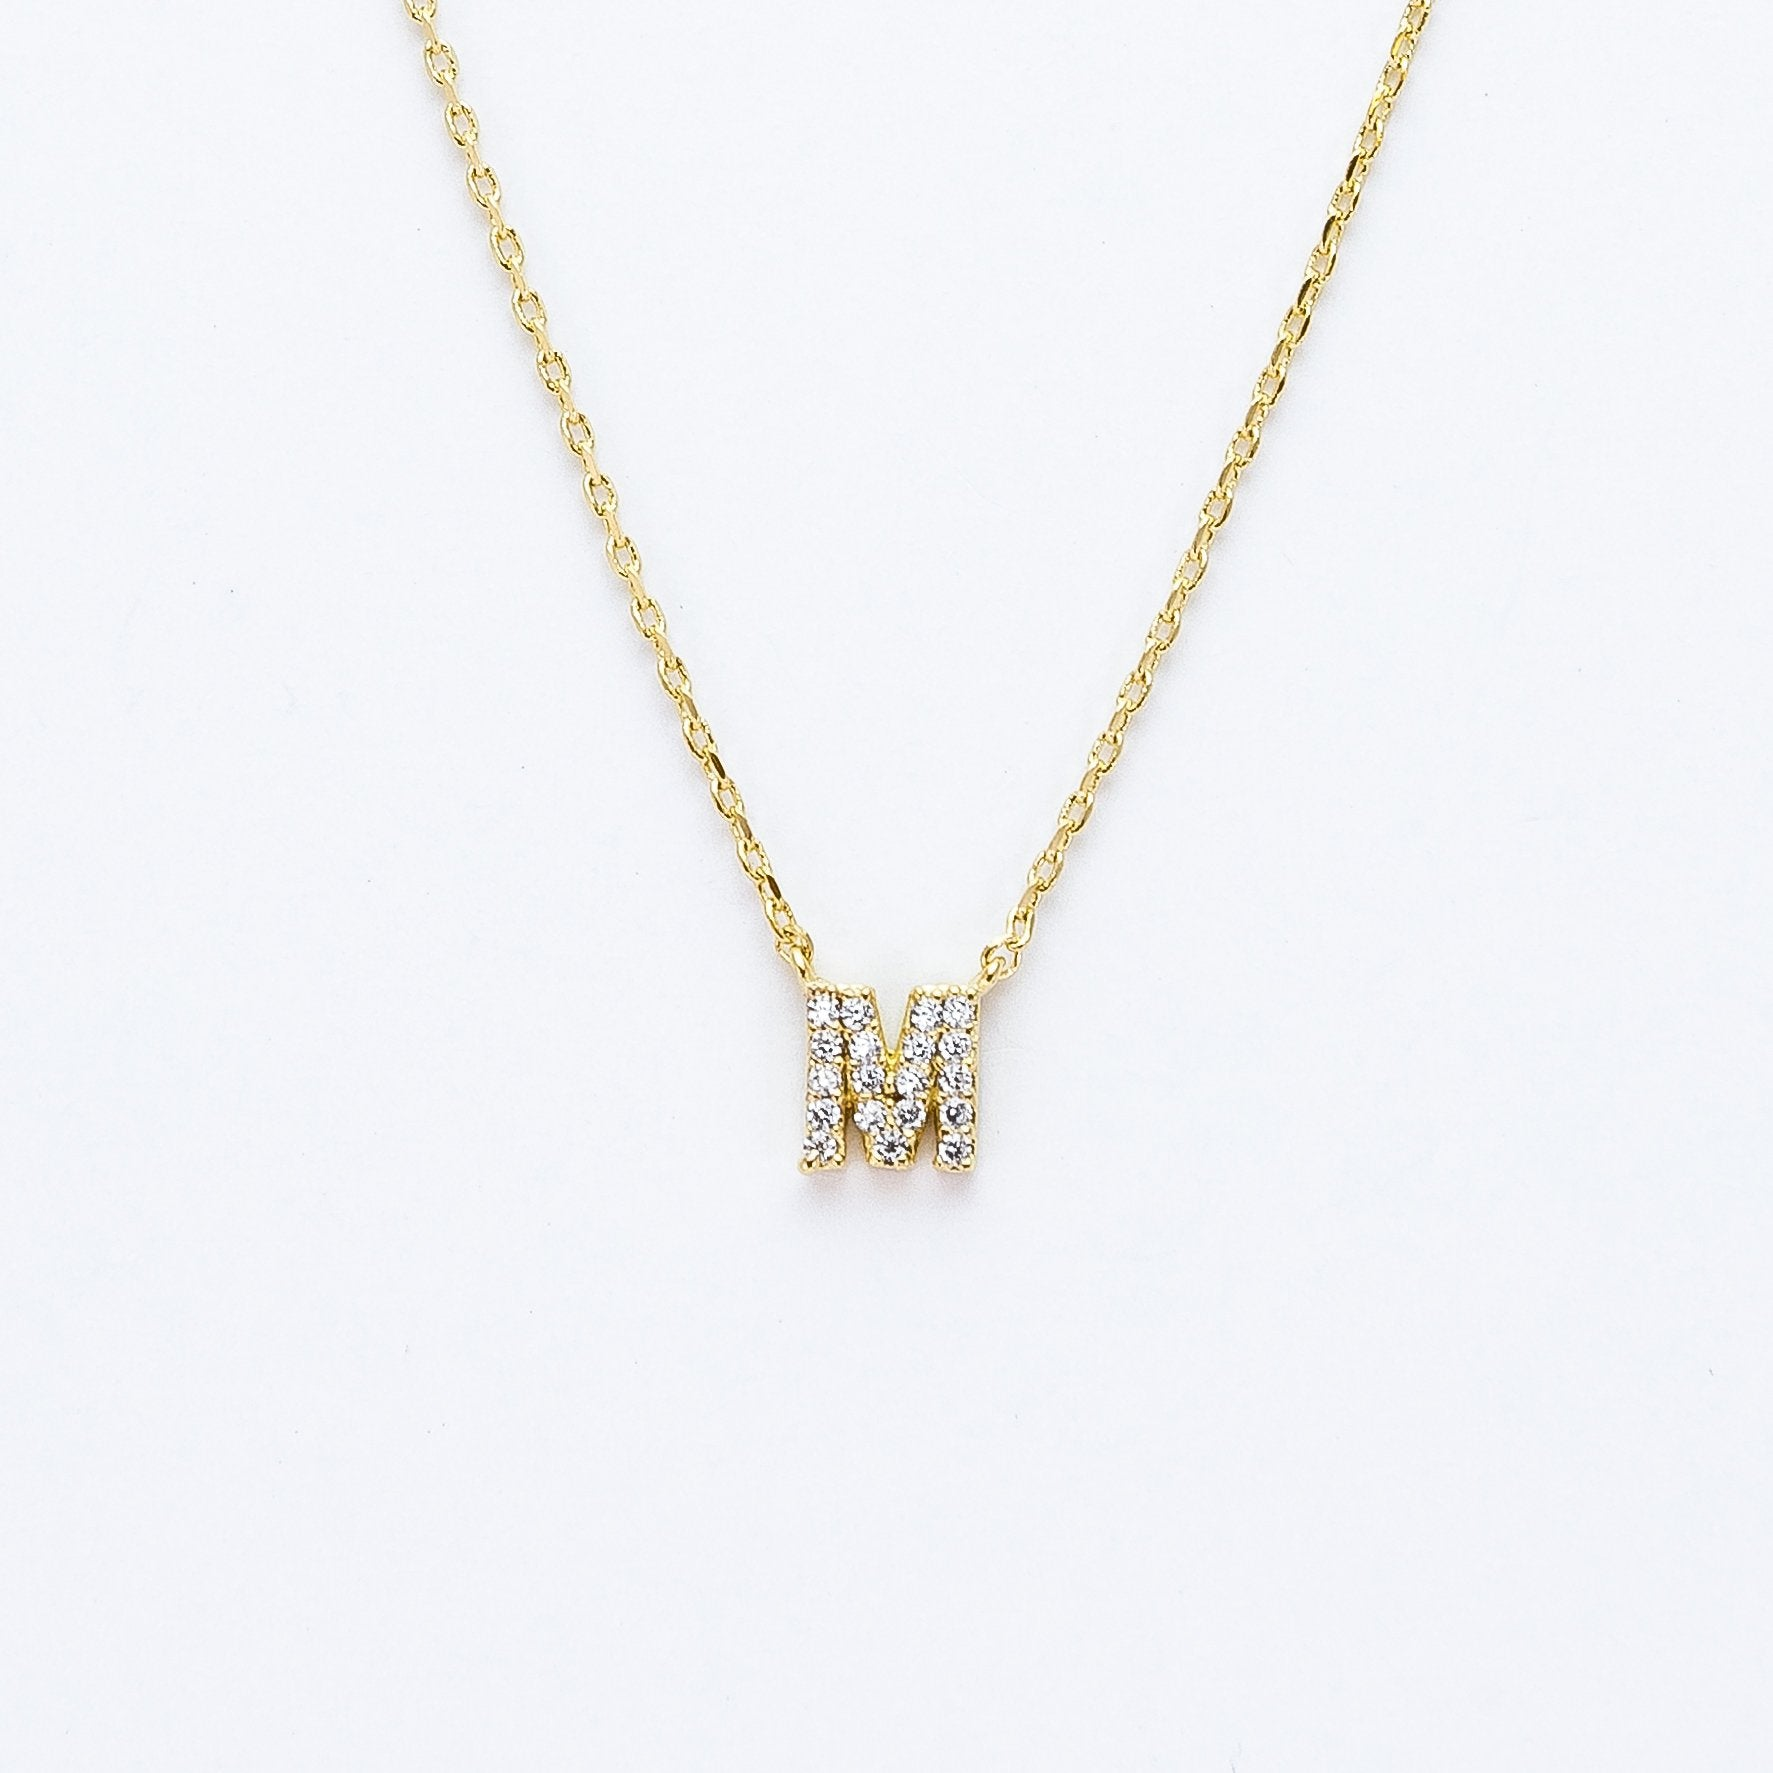 M Necklace